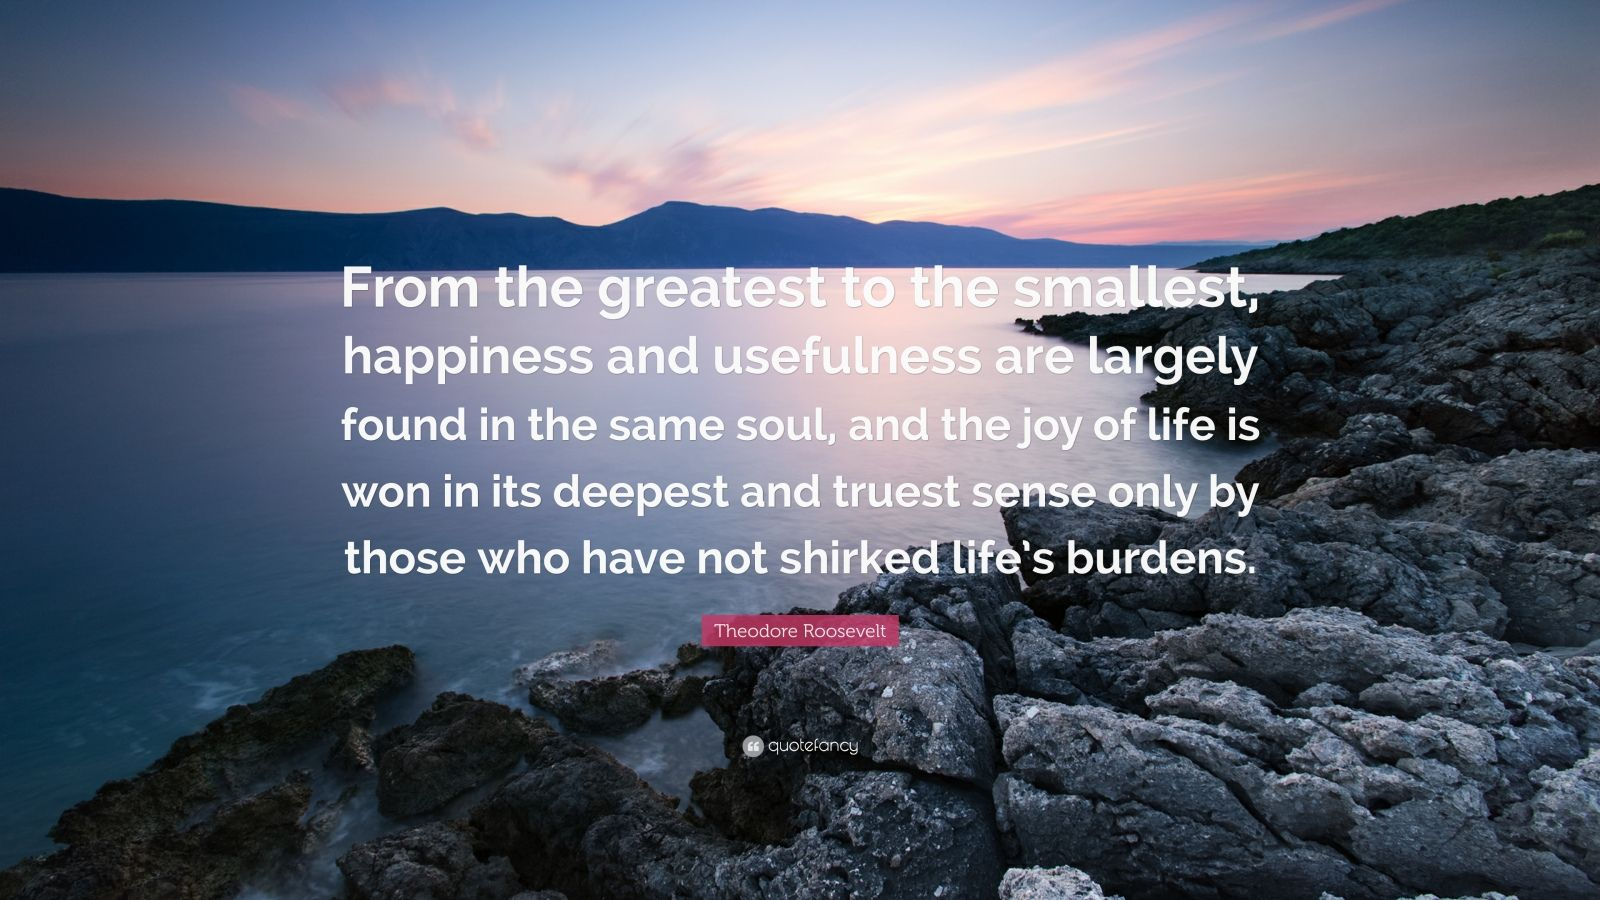 """Theodore Roosevelt Quote: """"From the greatest to the smallest, happiness and usefulness are largely found in the same soul, and the joy of life is won in its deepest and truest sense only by those who have not shirked life's burdens."""""""